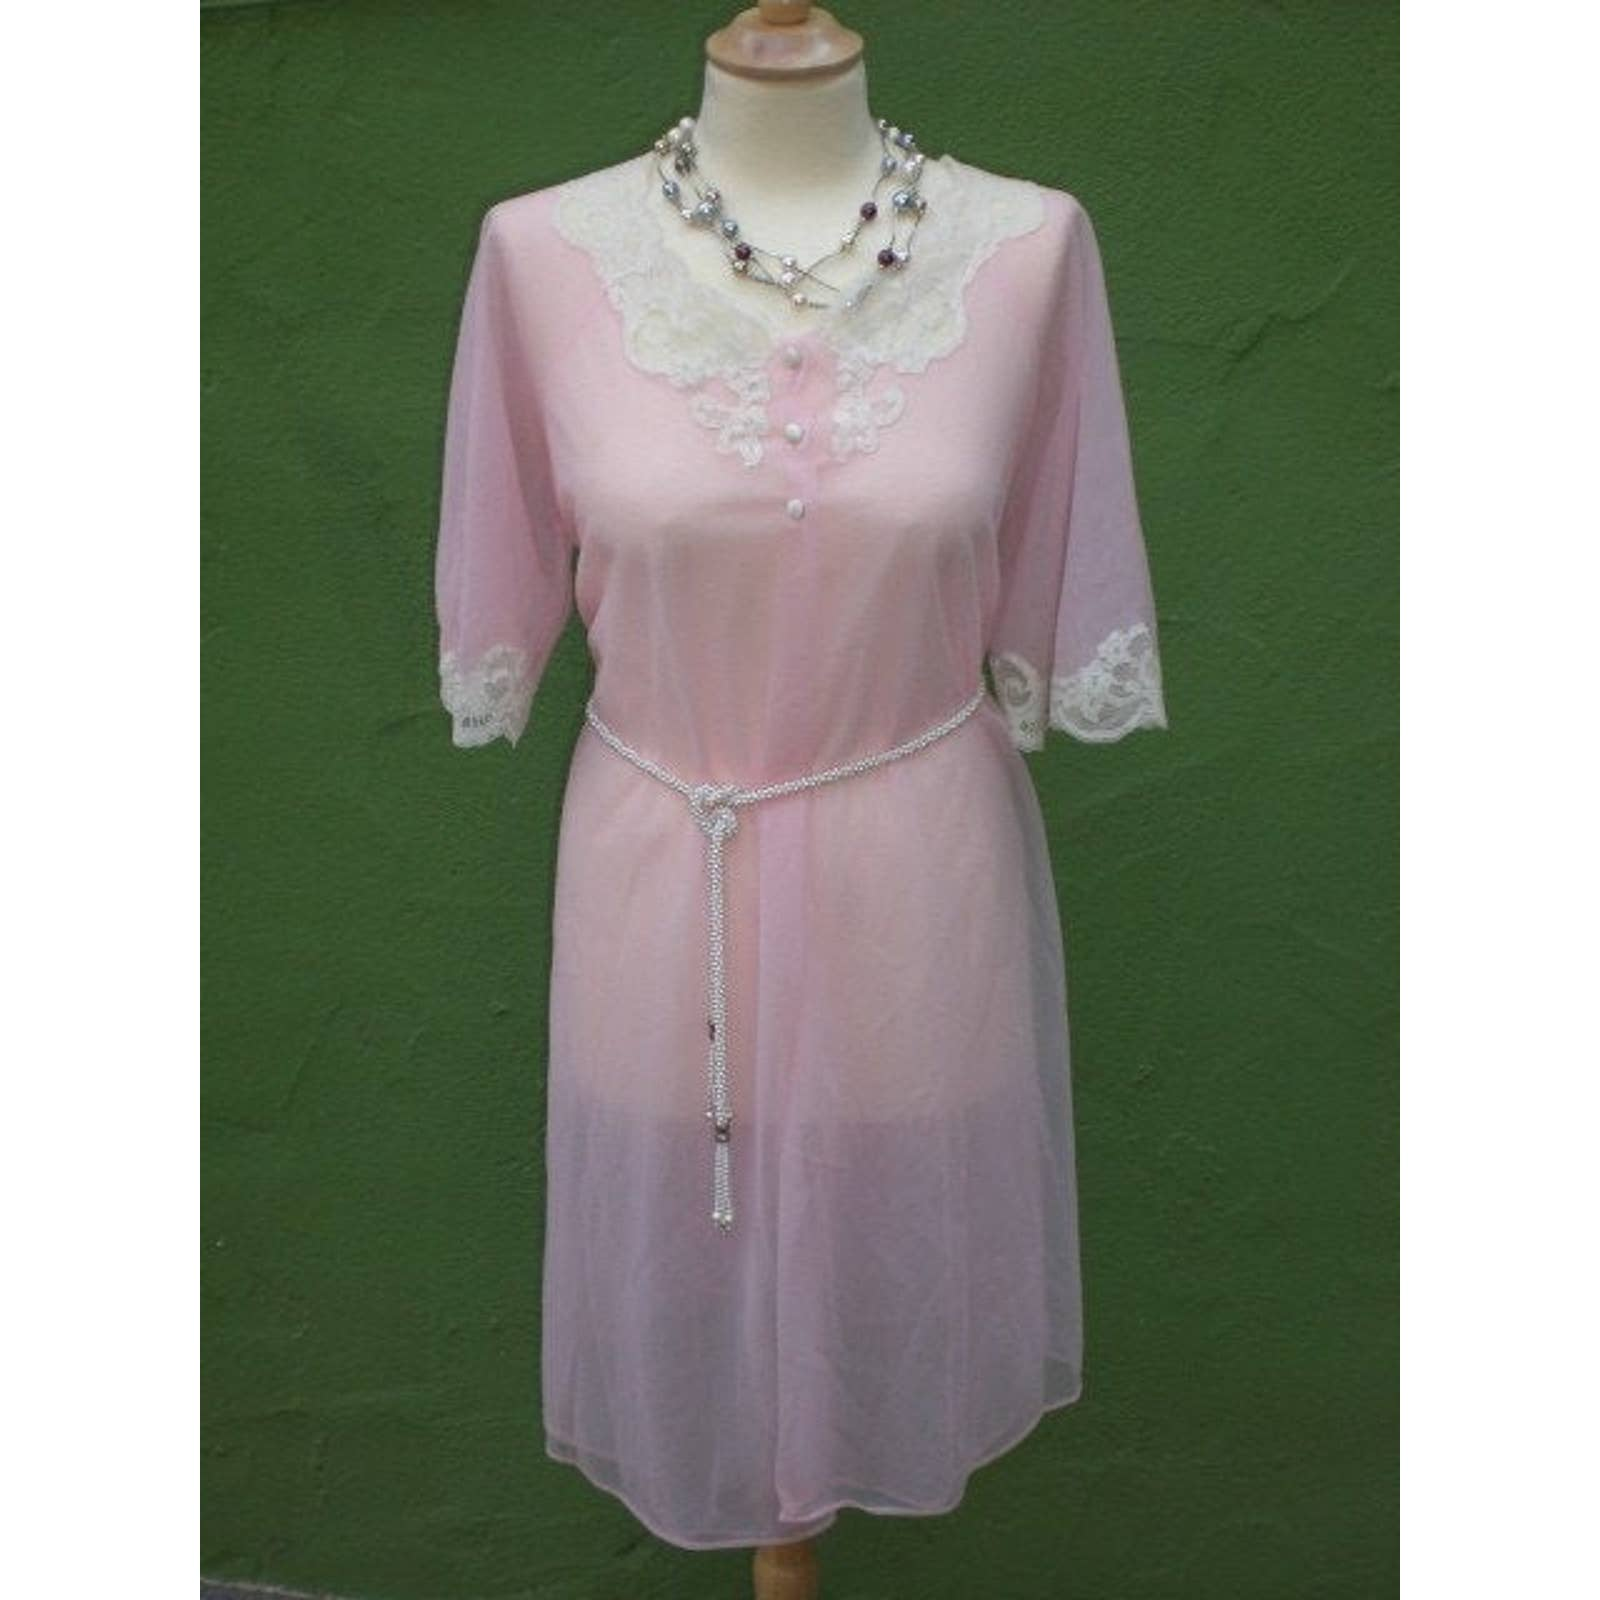 Product Image 1 - Here is a light pink